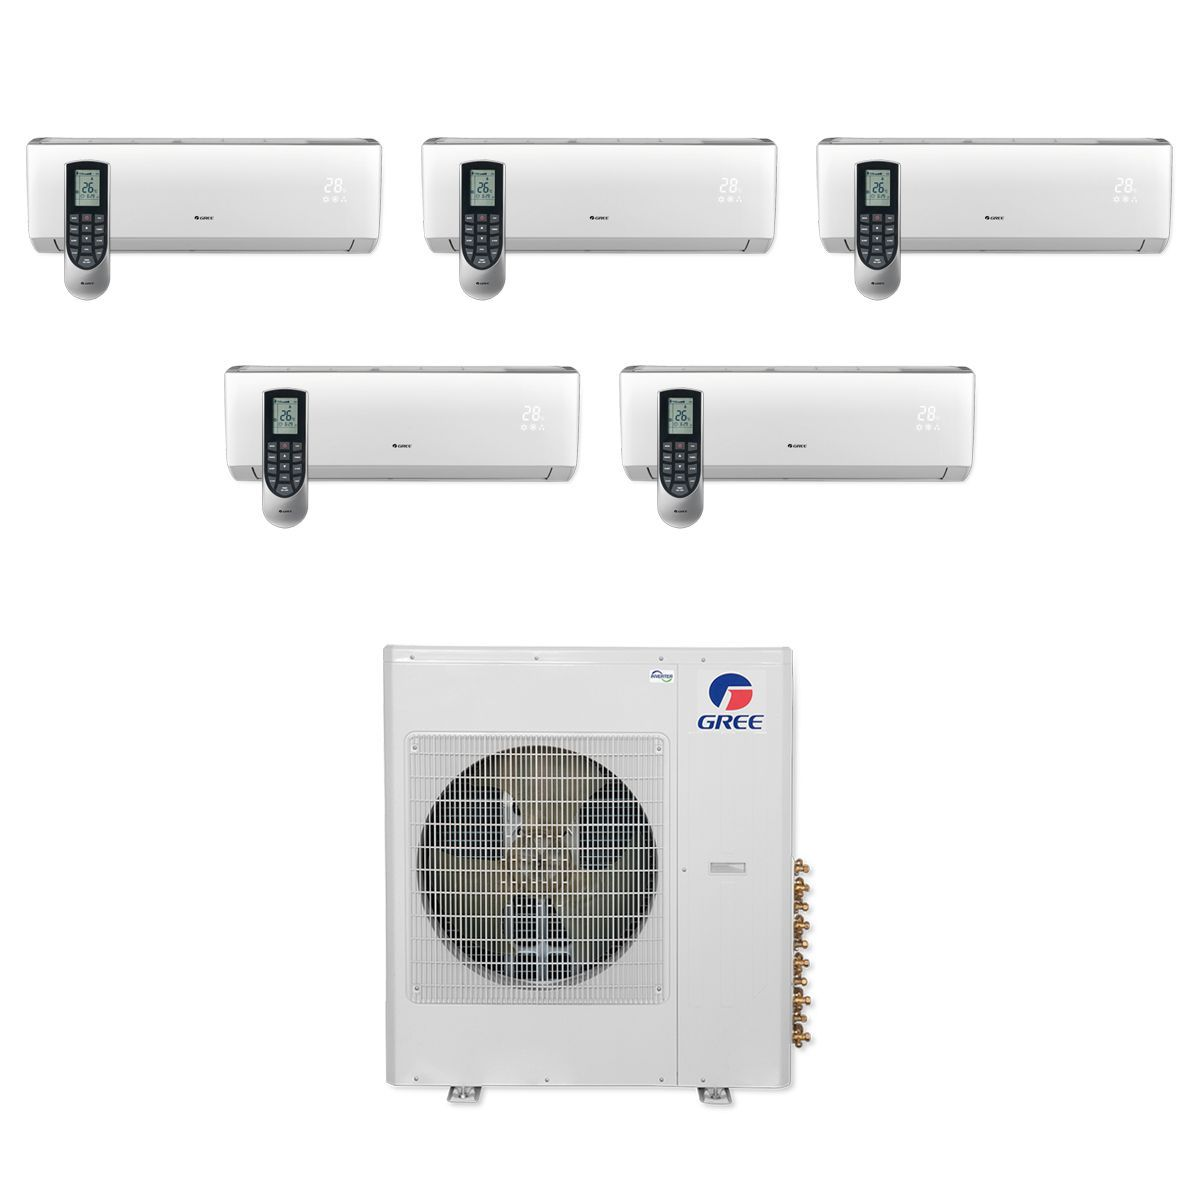 Gree 42 000 Btu Multi21 Penta Zone Wall Mount Mini Split Air Conditioner Heat Pump 208 230v Seer 21 9 9 9 9 9 Heat Pump Window Unit